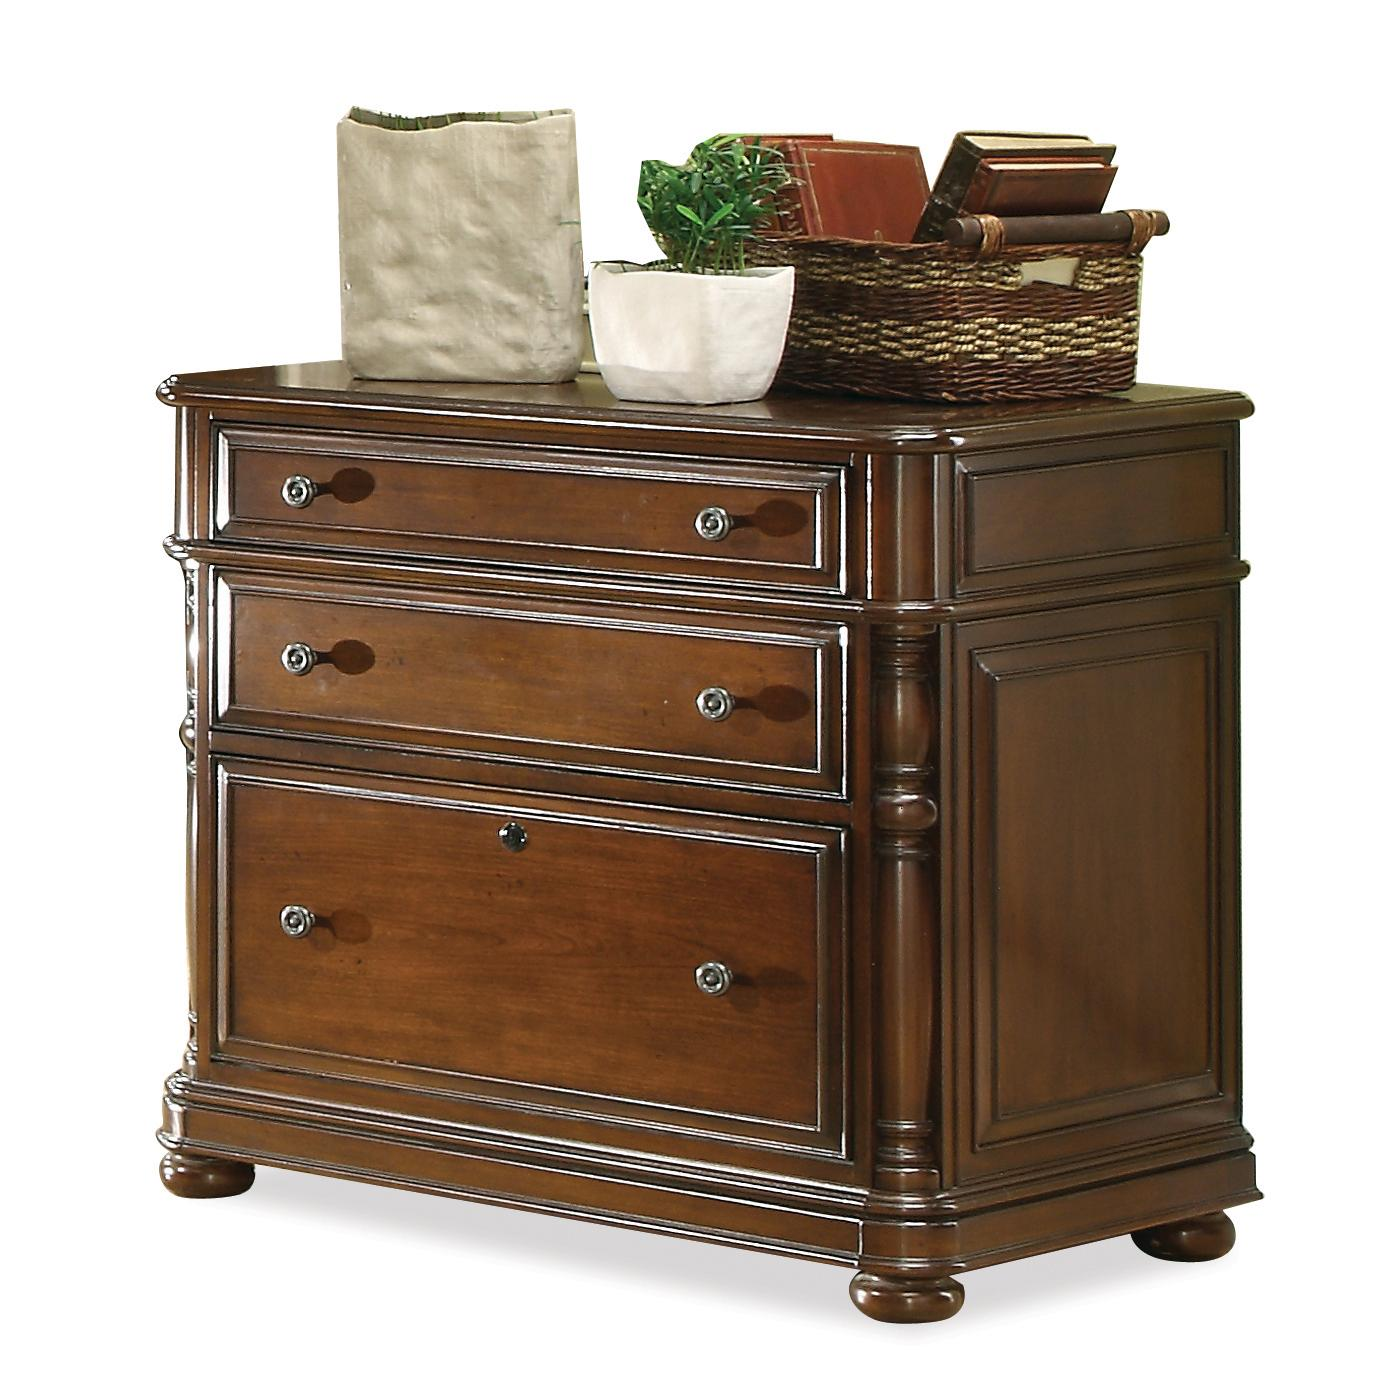 Marvelous 3 Drawer Lateral File Cabinet With Bun Feet